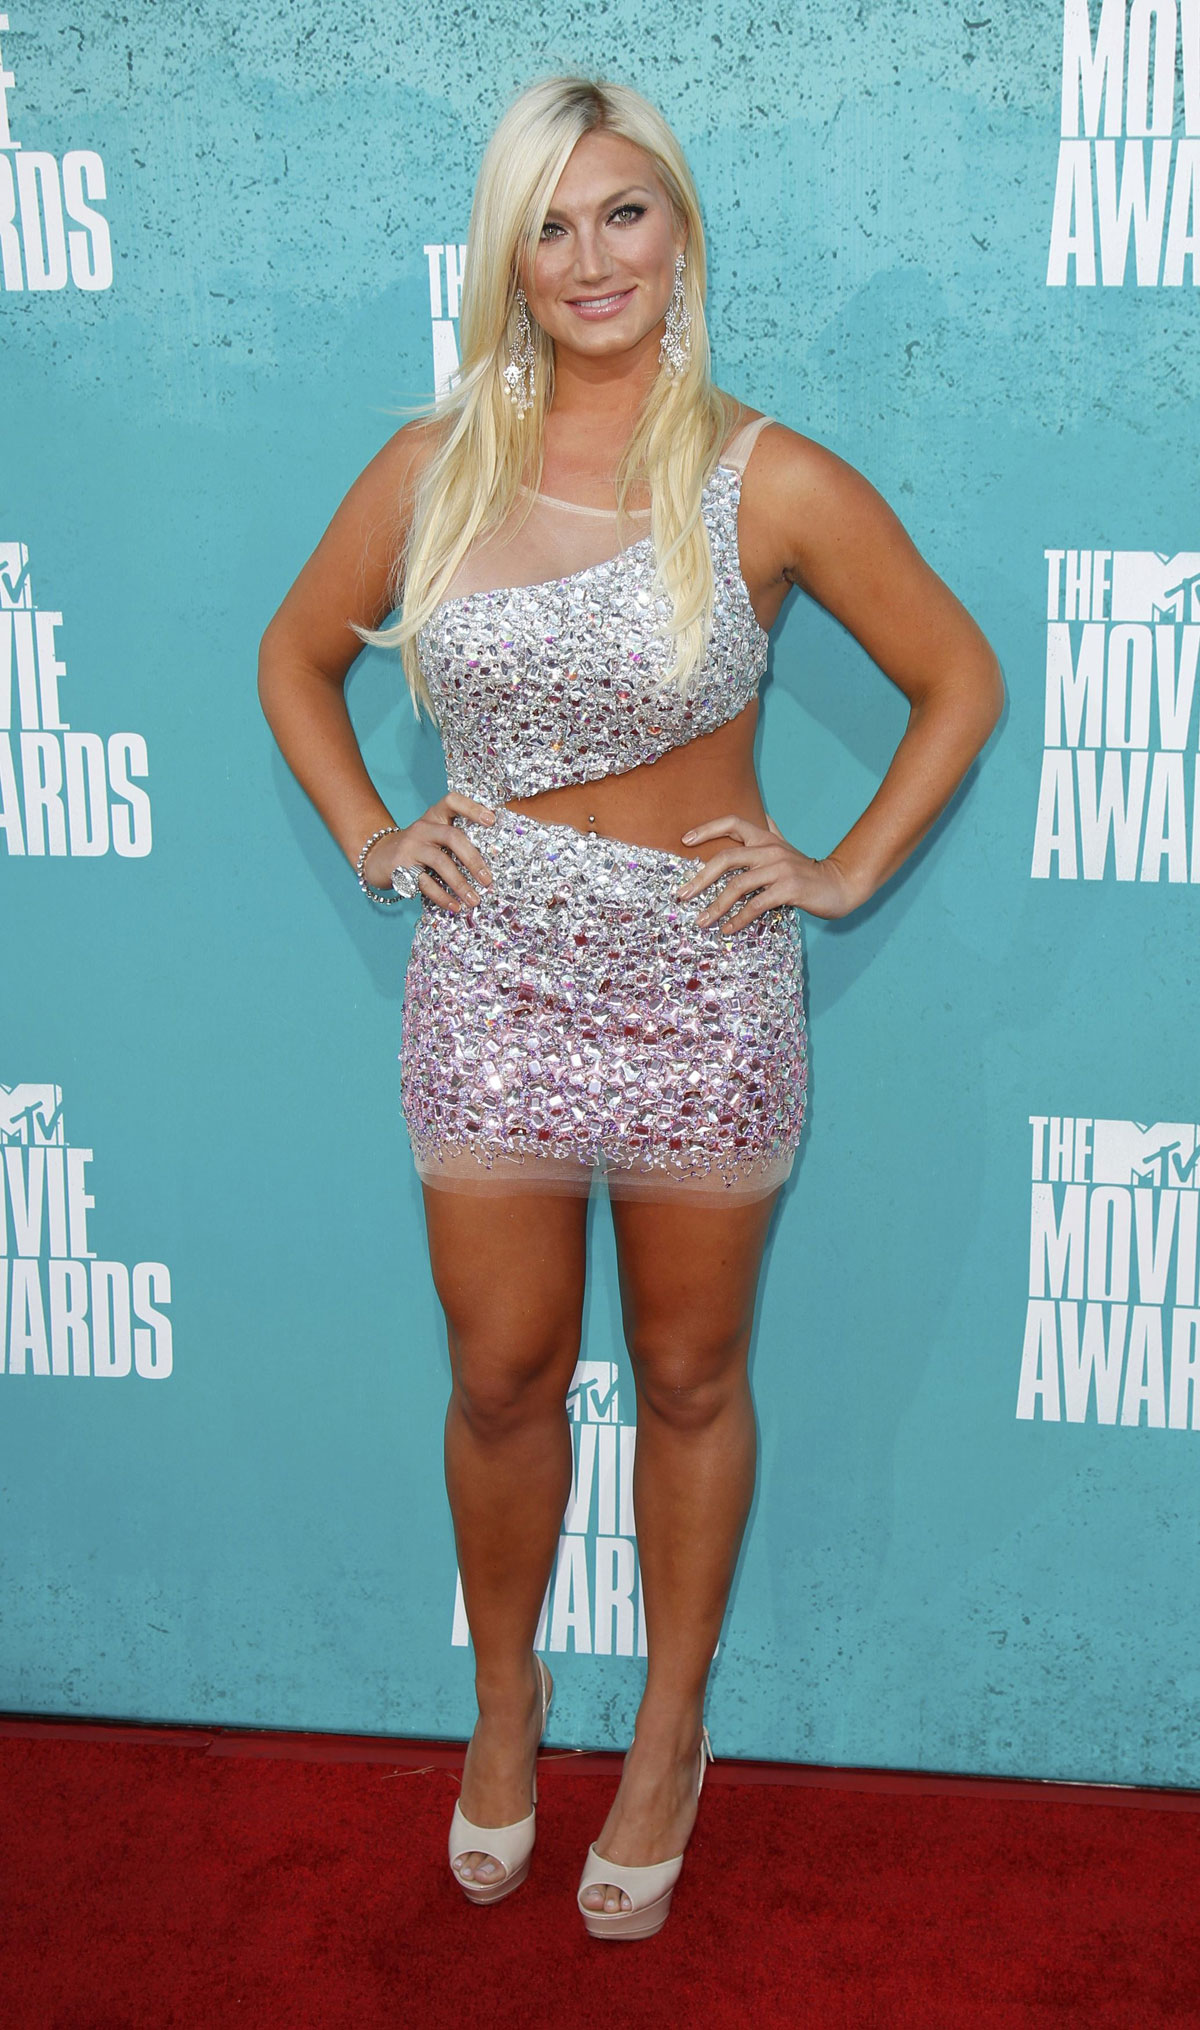 > Brooke Hogan Got Potential - Photo posted in Eyecandy - Celebrities and random chicks | Sign in and leave a comment below!